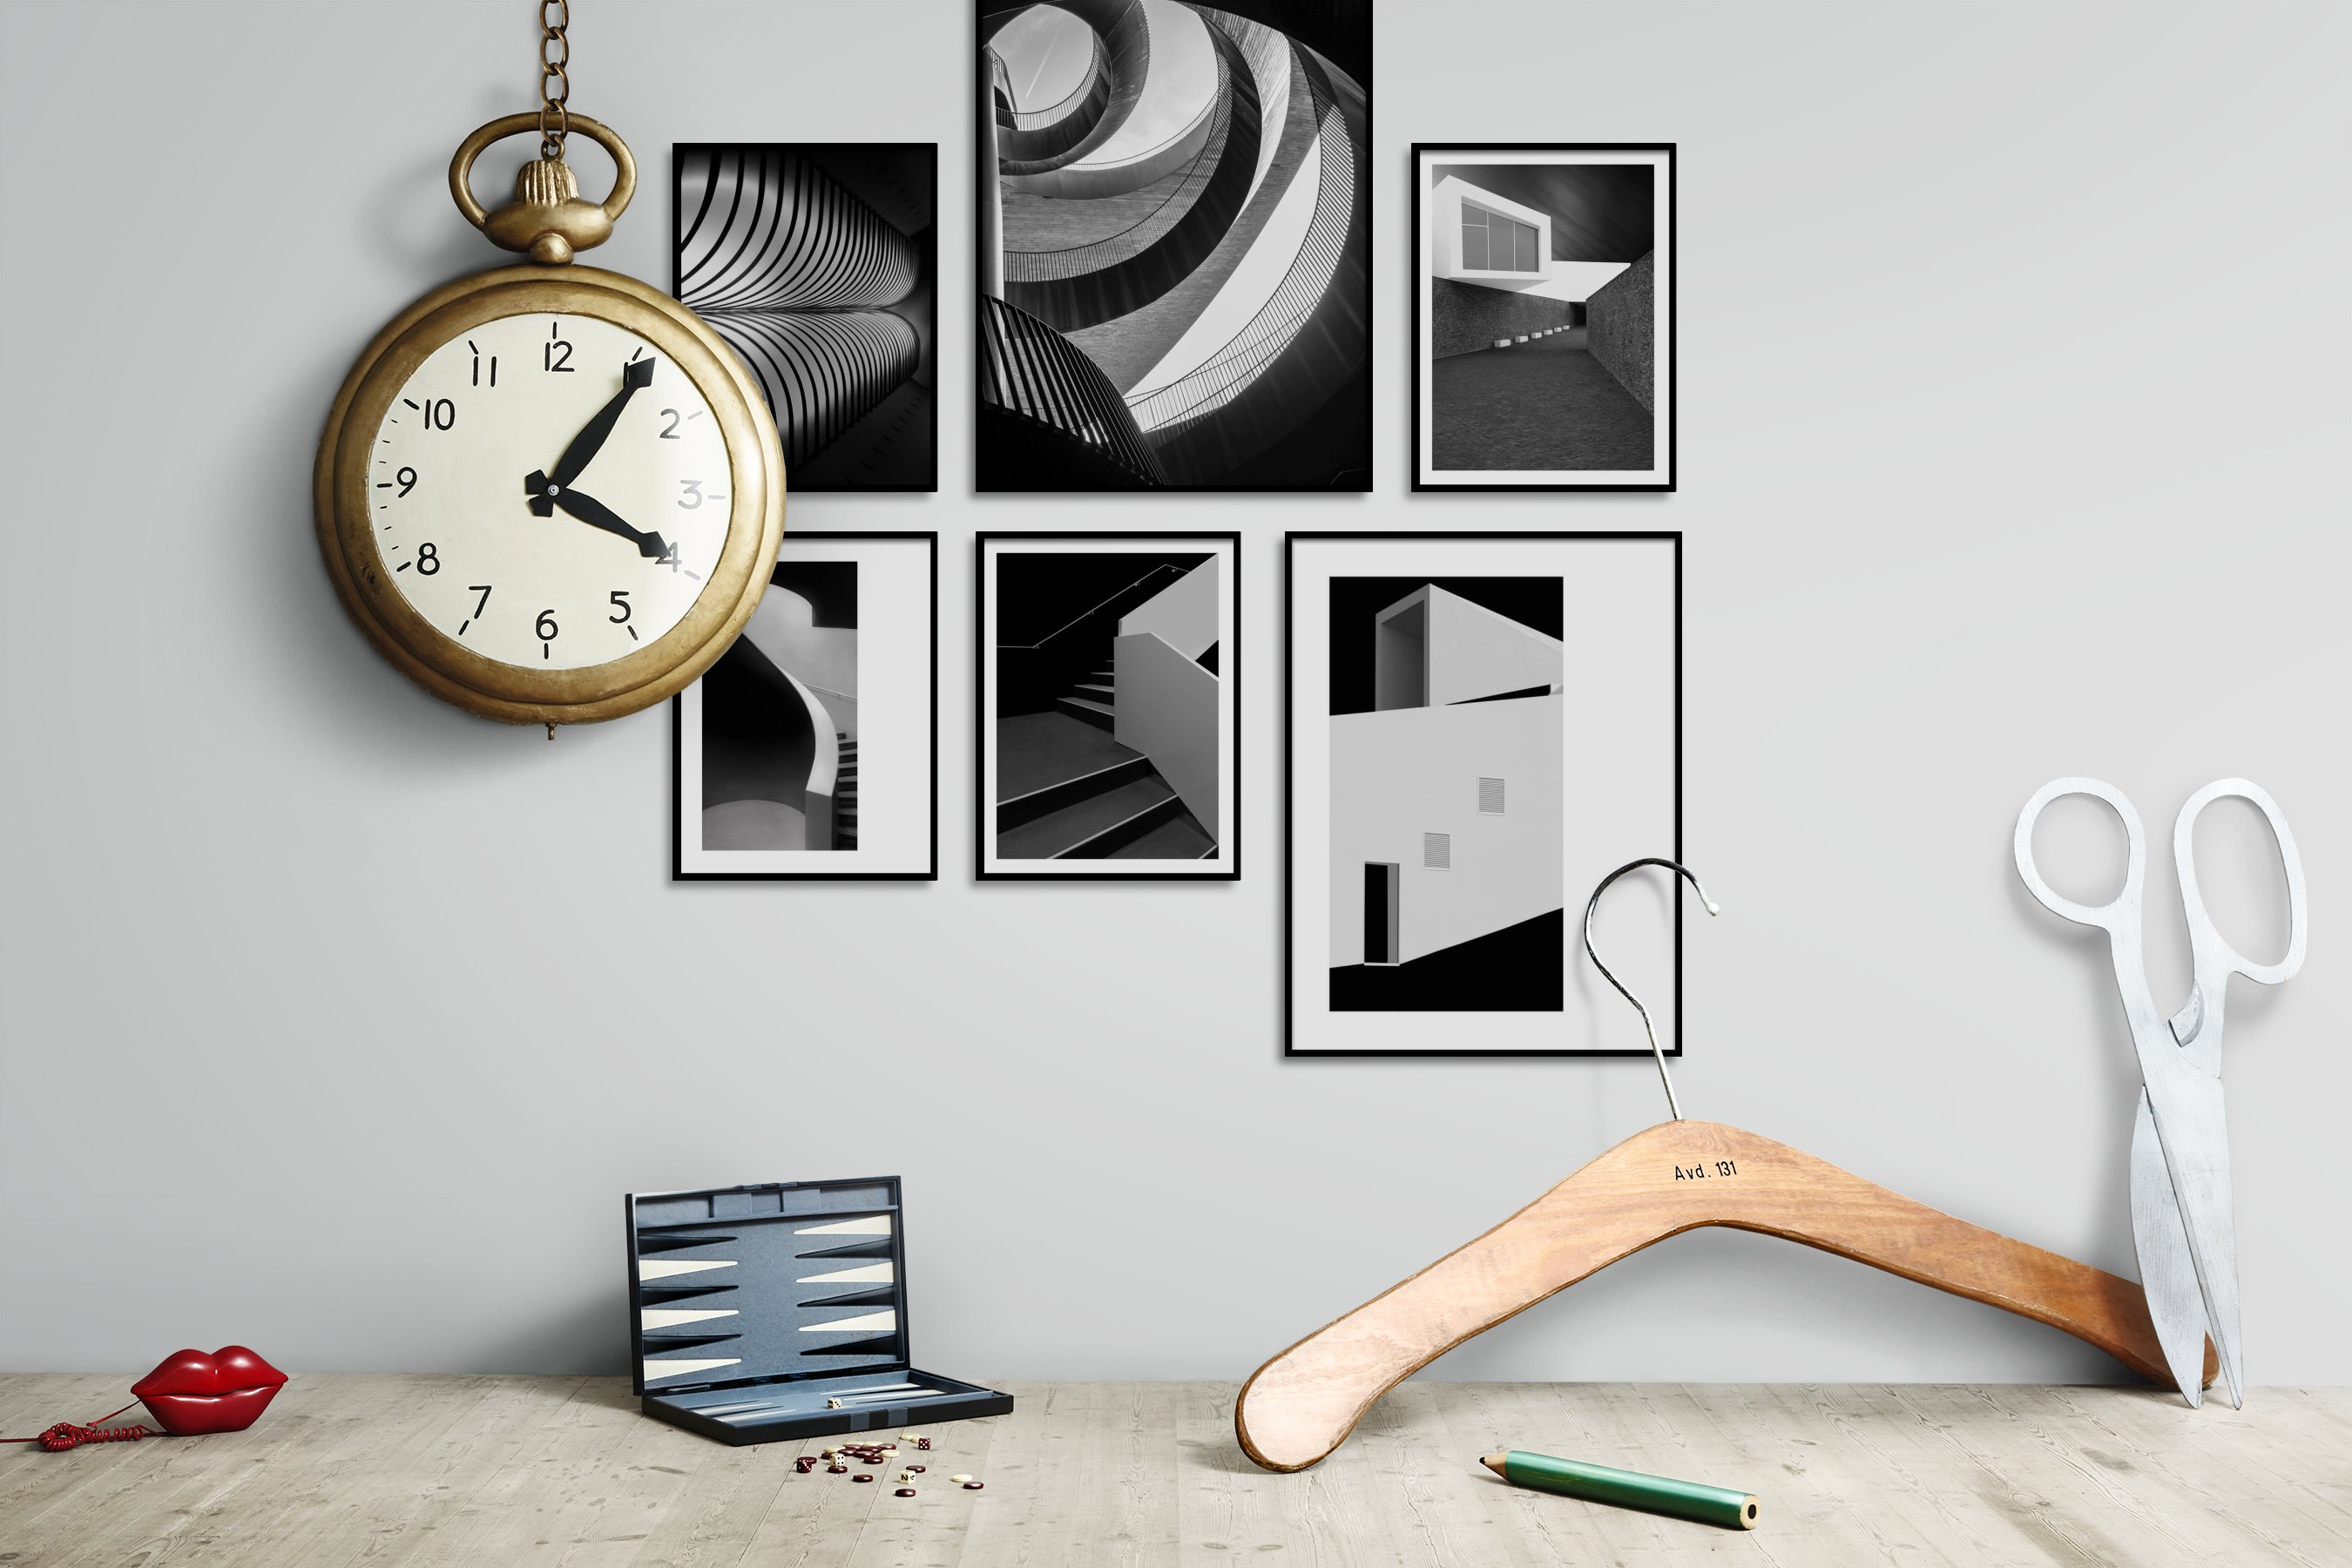 Gallery wall idea with six framed pictures arranged on a wall depicting Black & White, For the Moderate, and For the Minimalist